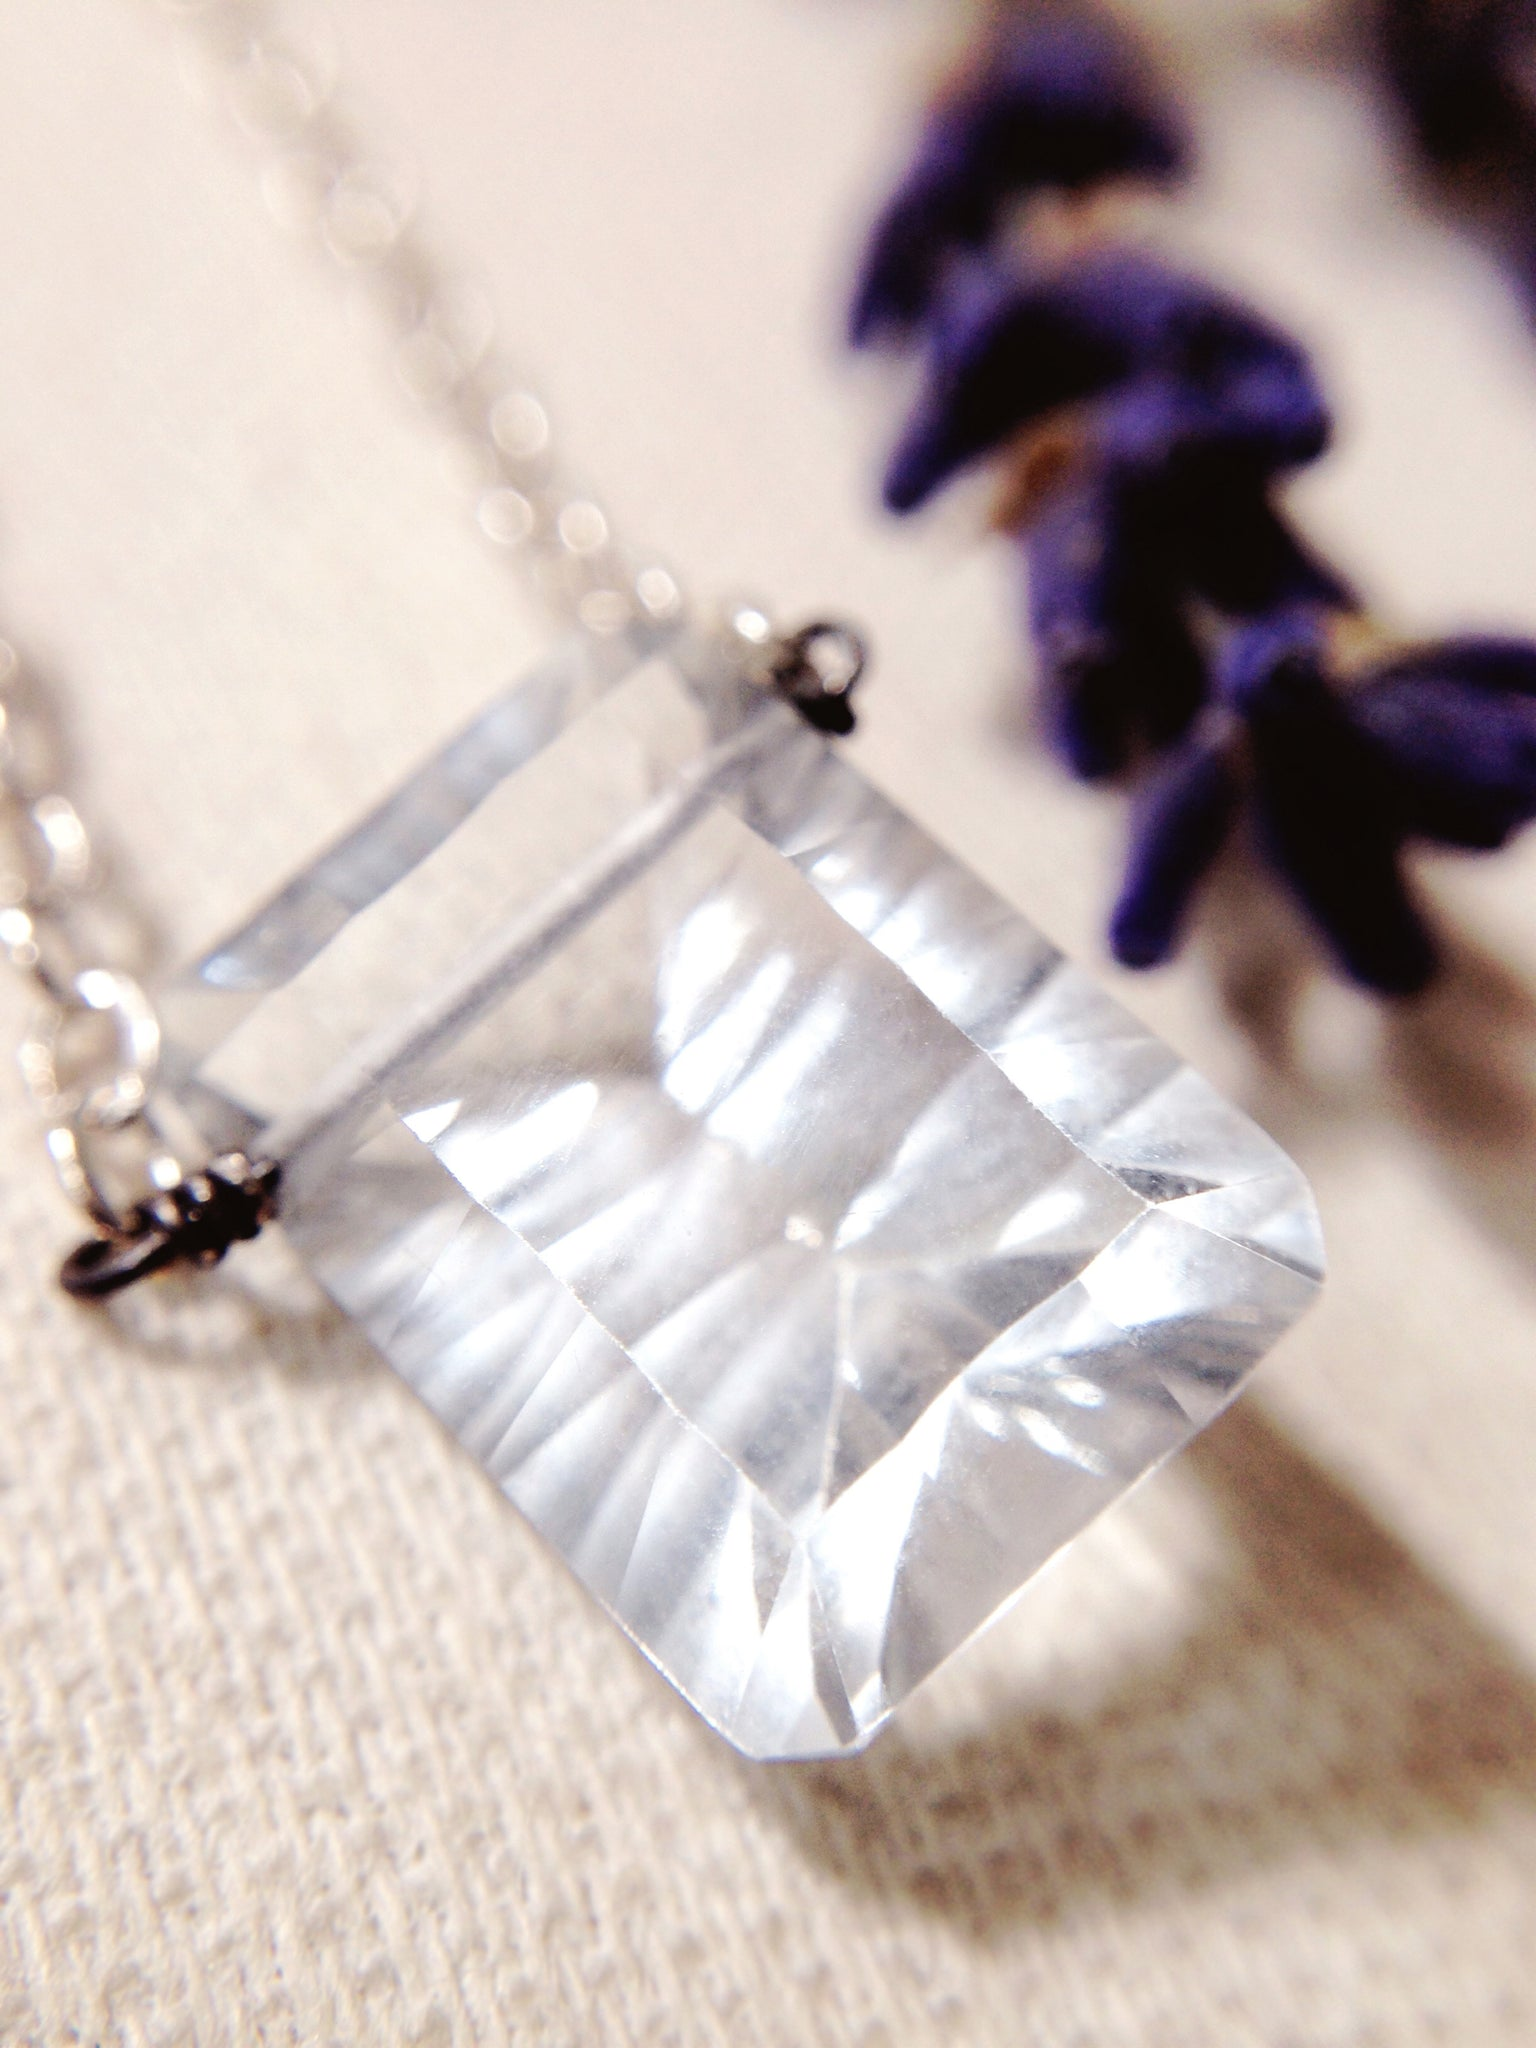 'Light of Perception' + Carved Emerald cut Quartz crystal + Sterling Silver necklace